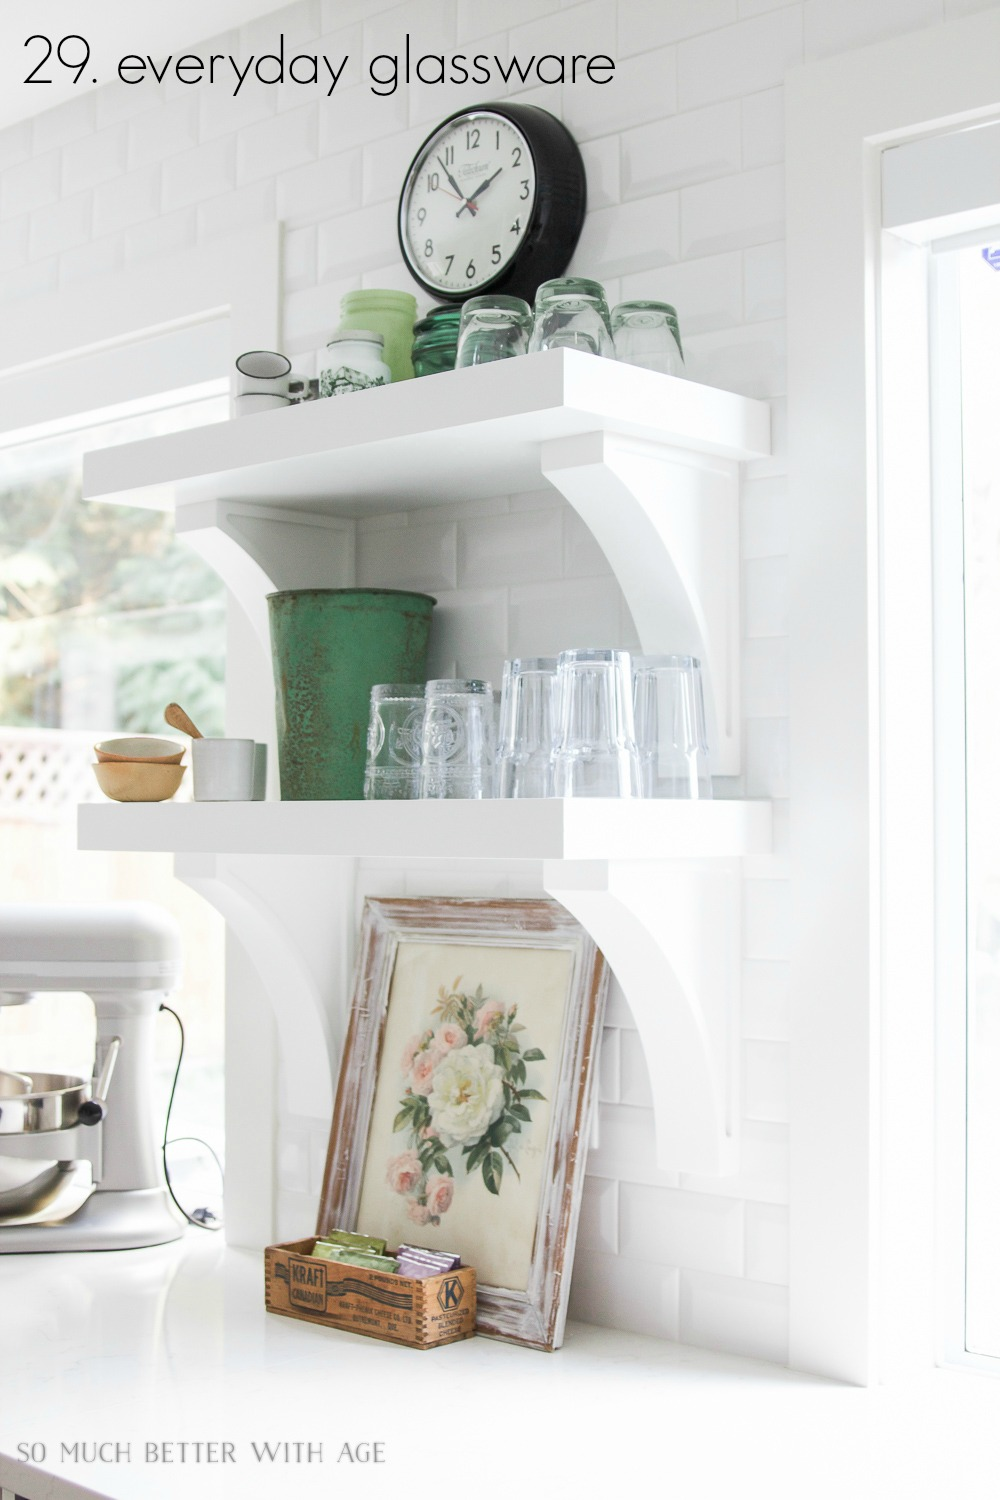 Kitchen cupboard and drawer organization / glassware on shelves - So Much Better With Age